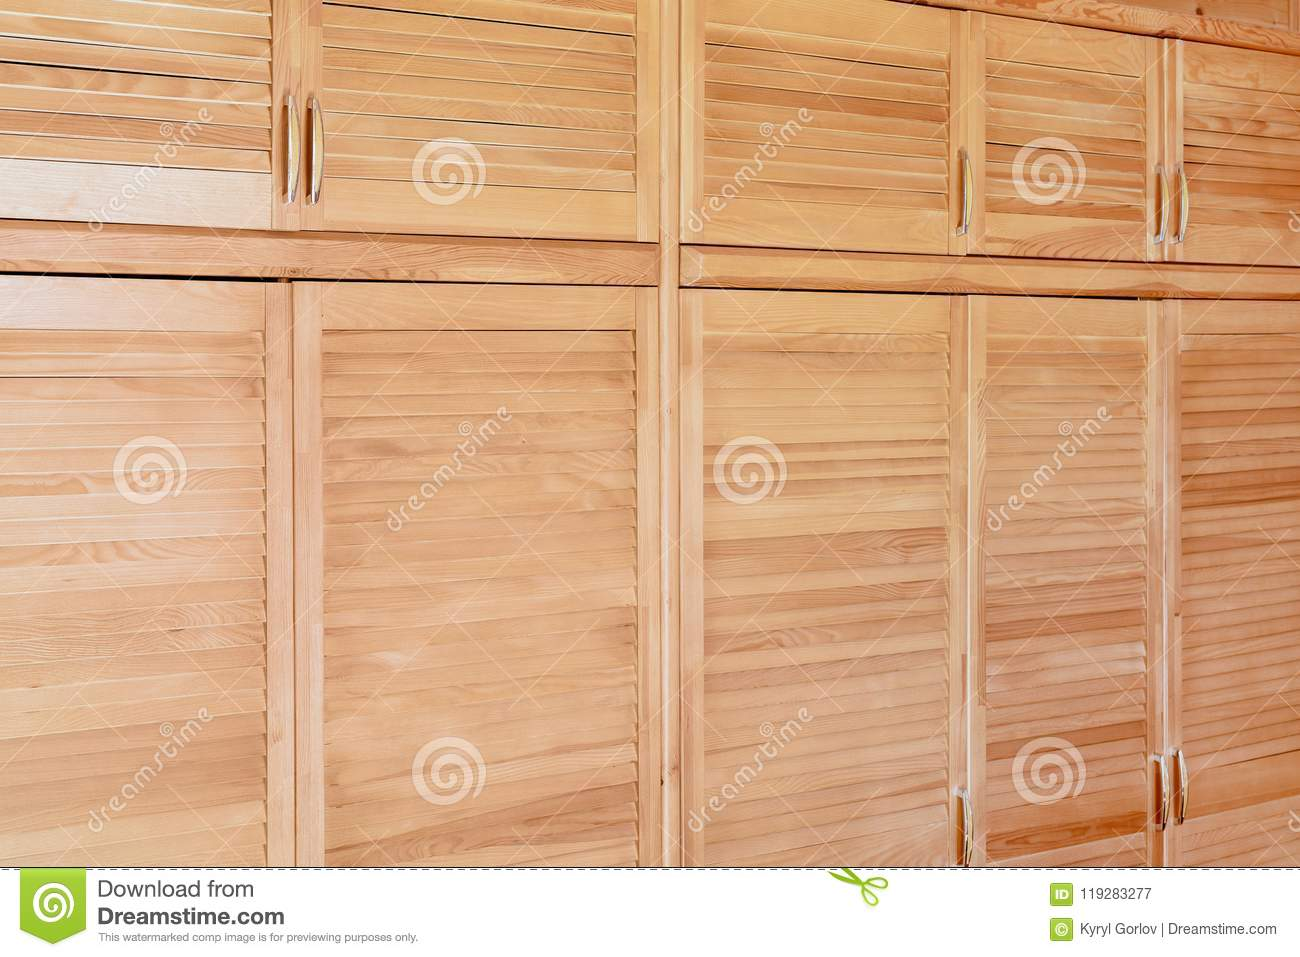 Download Modern Wooden Cabinet In Classic Rustic Style. Details Of Wardrobe Case With Shutter Plank